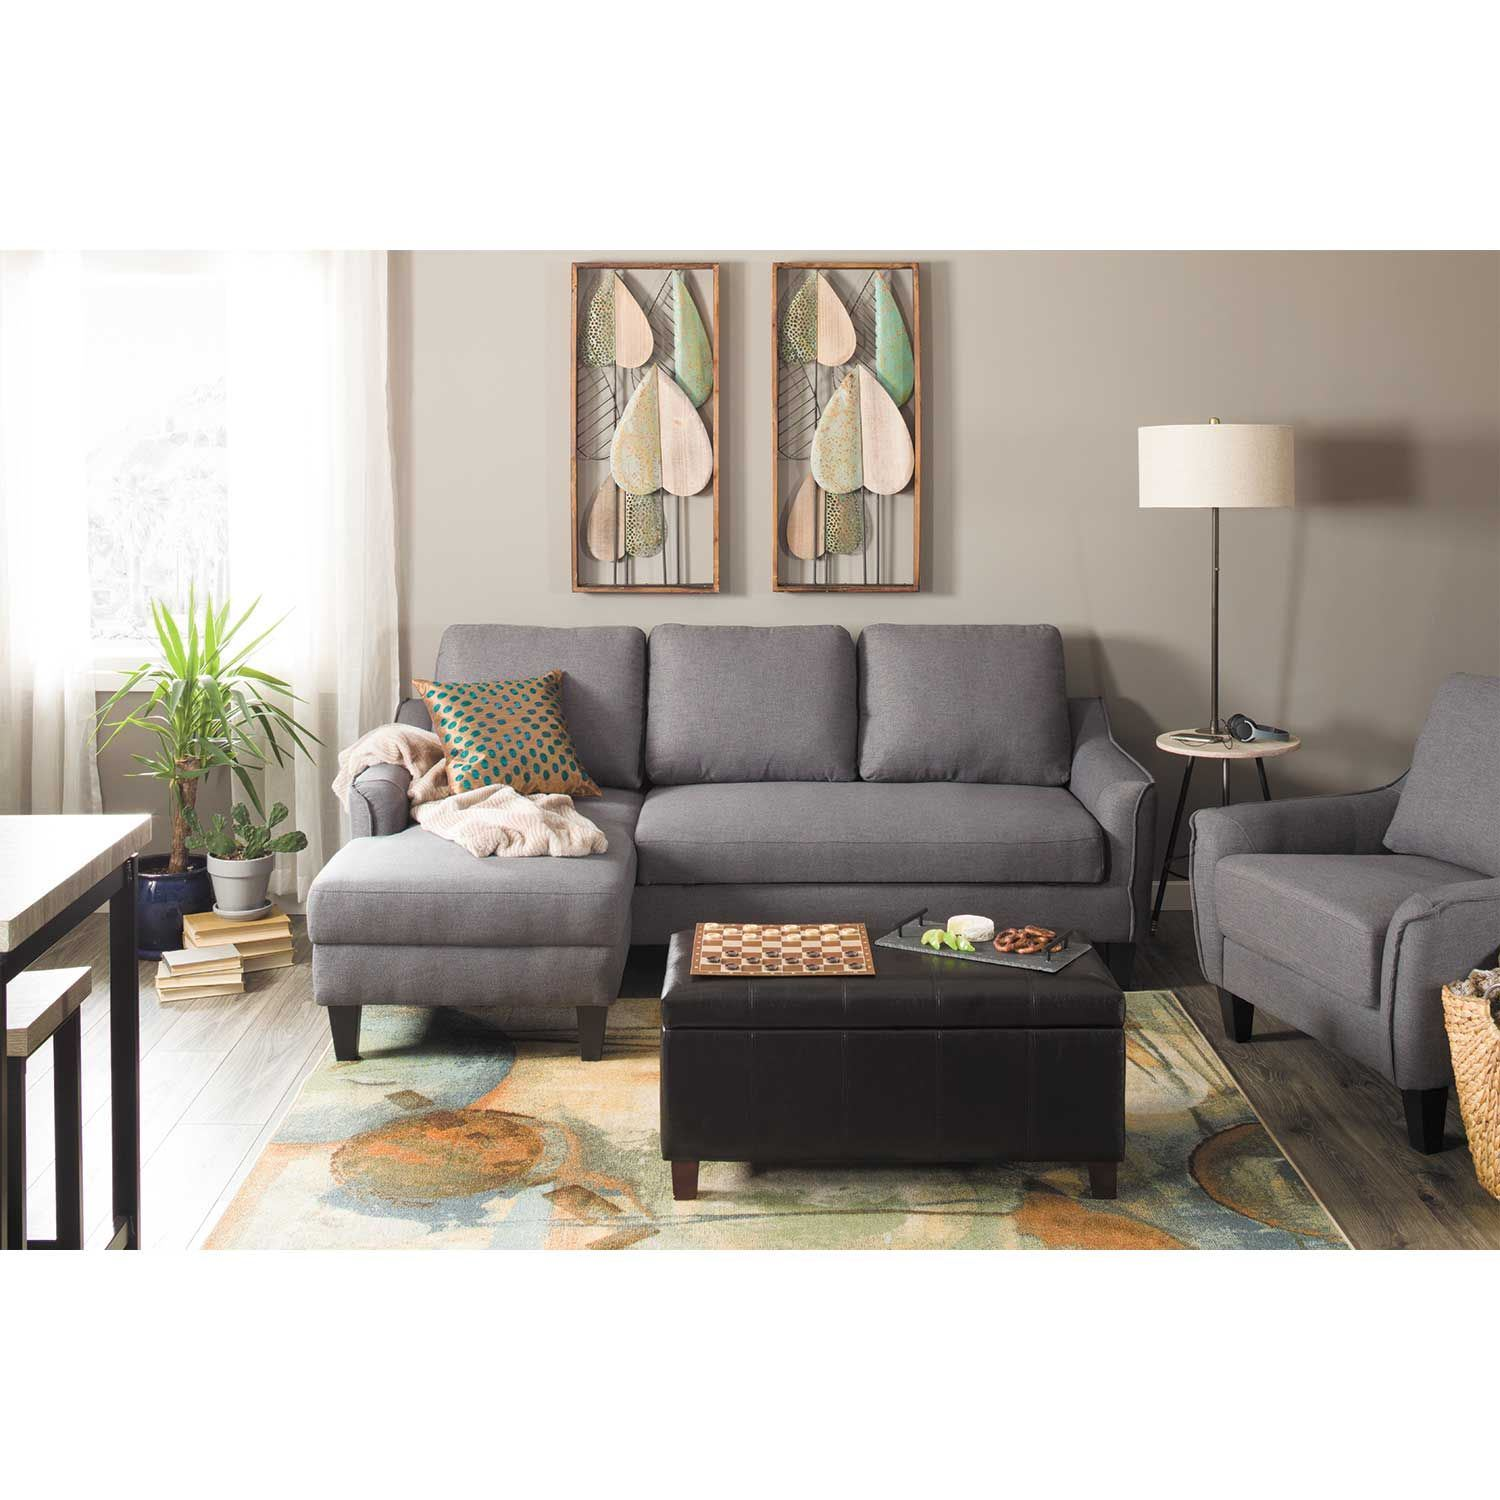 Fabulous Jarreau Gray Sofa Sleeper 1150271 Ashley Furniture Afw Com Gmtry Best Dining Table And Chair Ideas Images Gmtryco